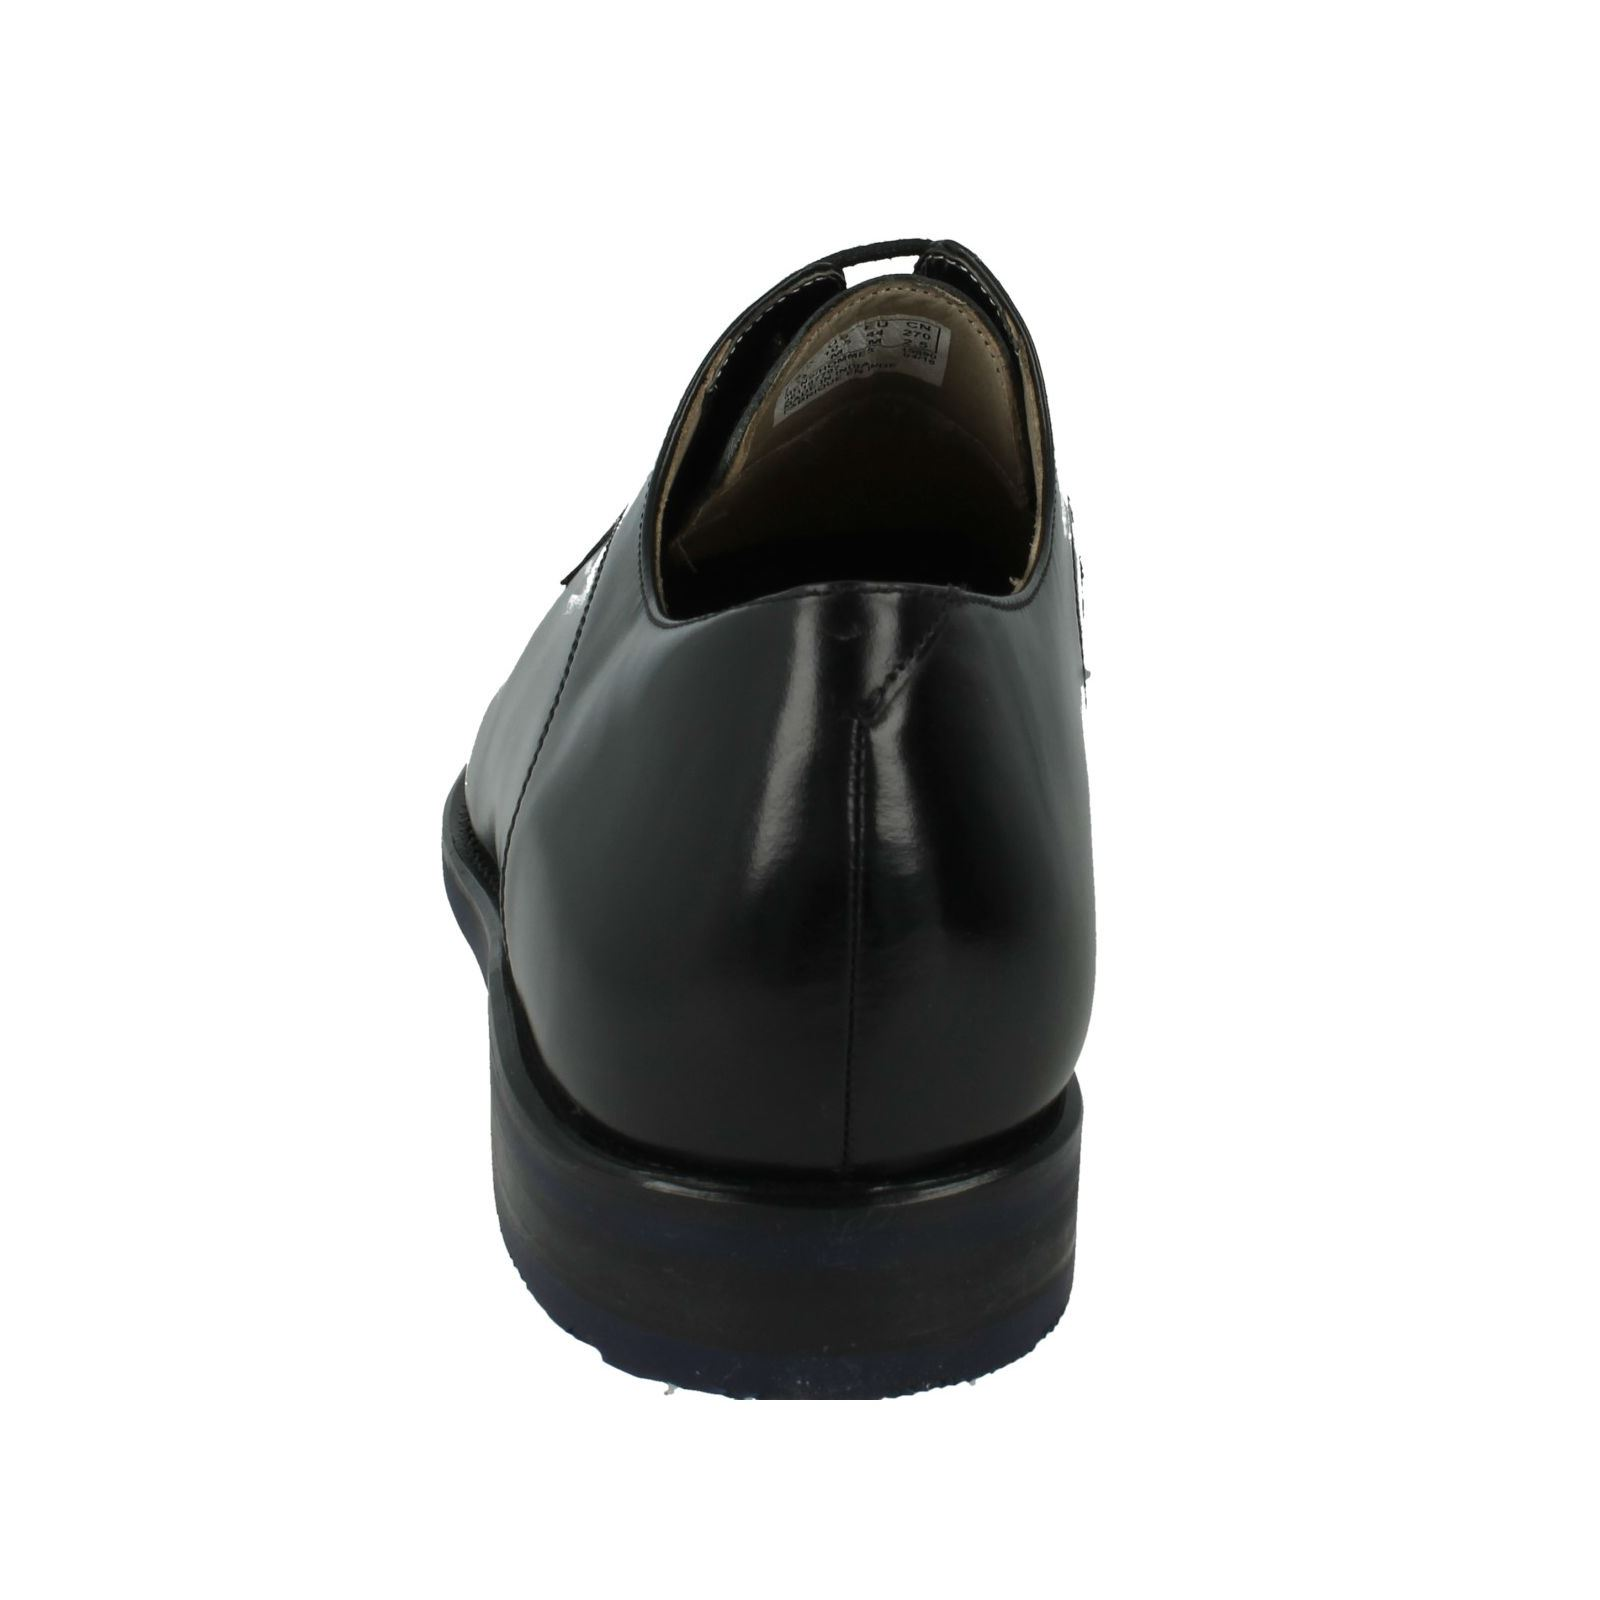 Men's Clarks Formal Lace Up Shoes Style - Swinley Lace